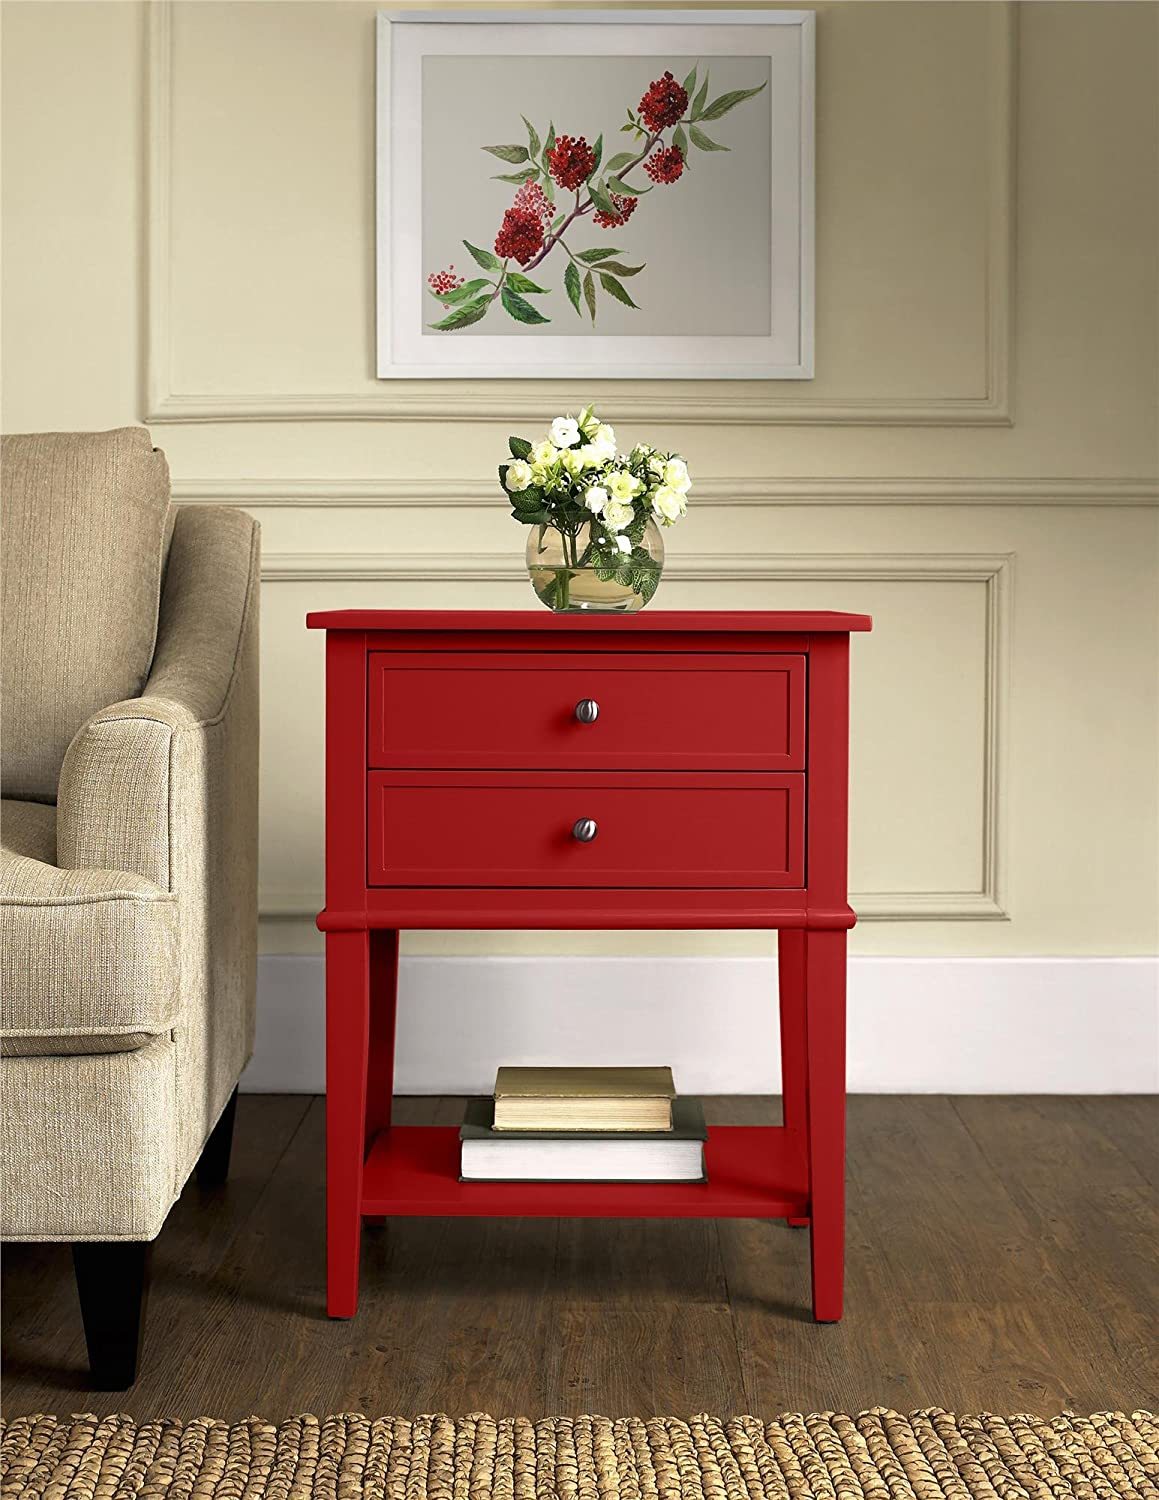 Amazon Com Ameriwood Home Franklin Accent Table With  Drawers Red Kitchen Dining